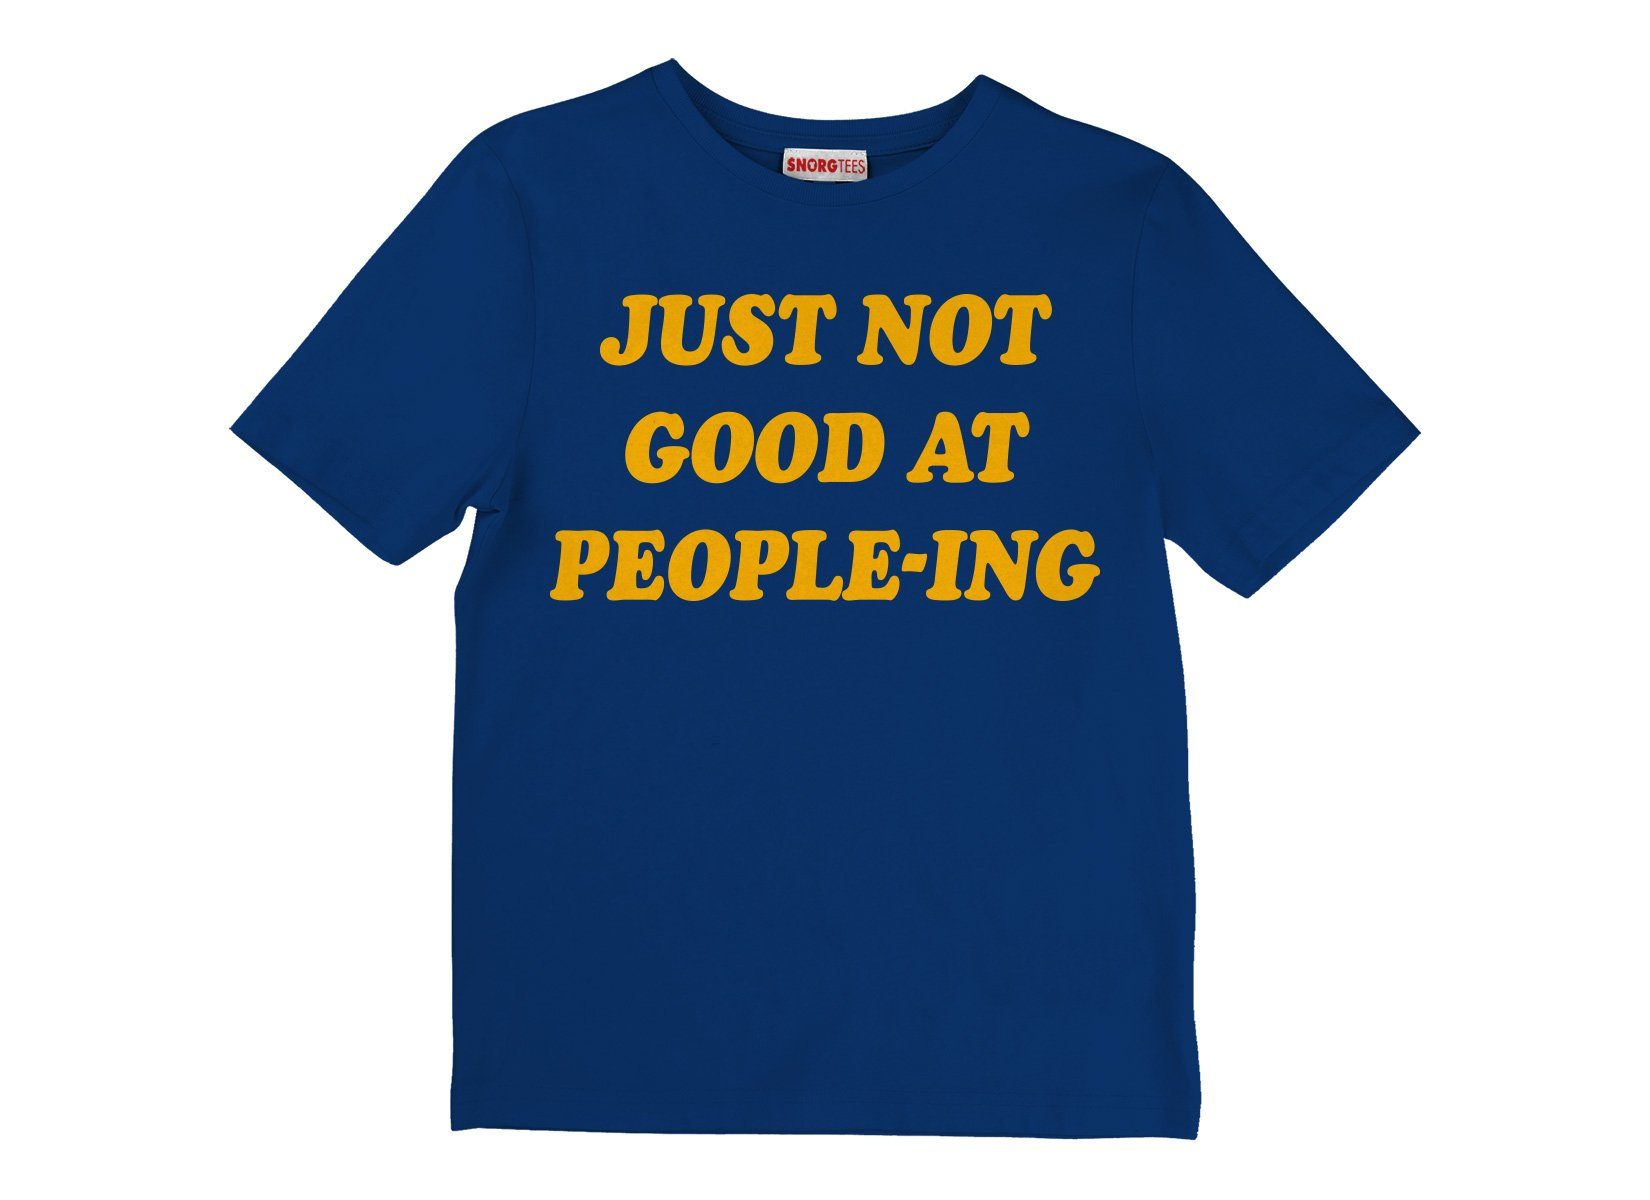 Just Not Good At People-ing on Kids T-Shirt